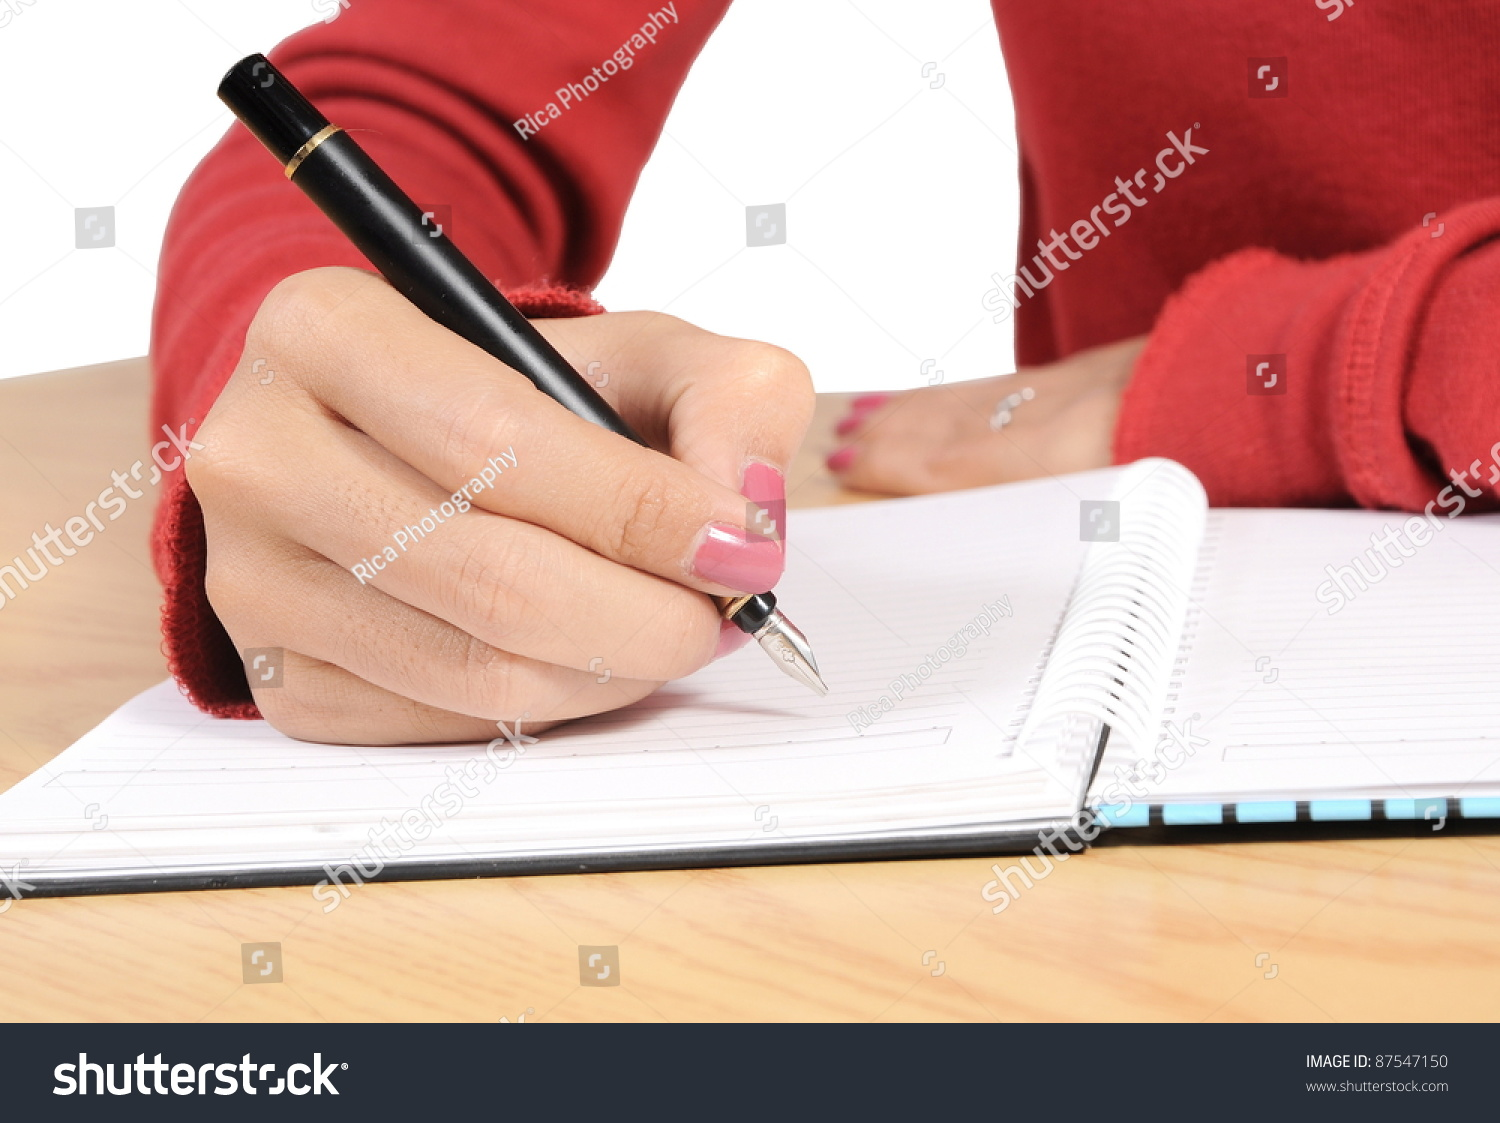 hand writing book